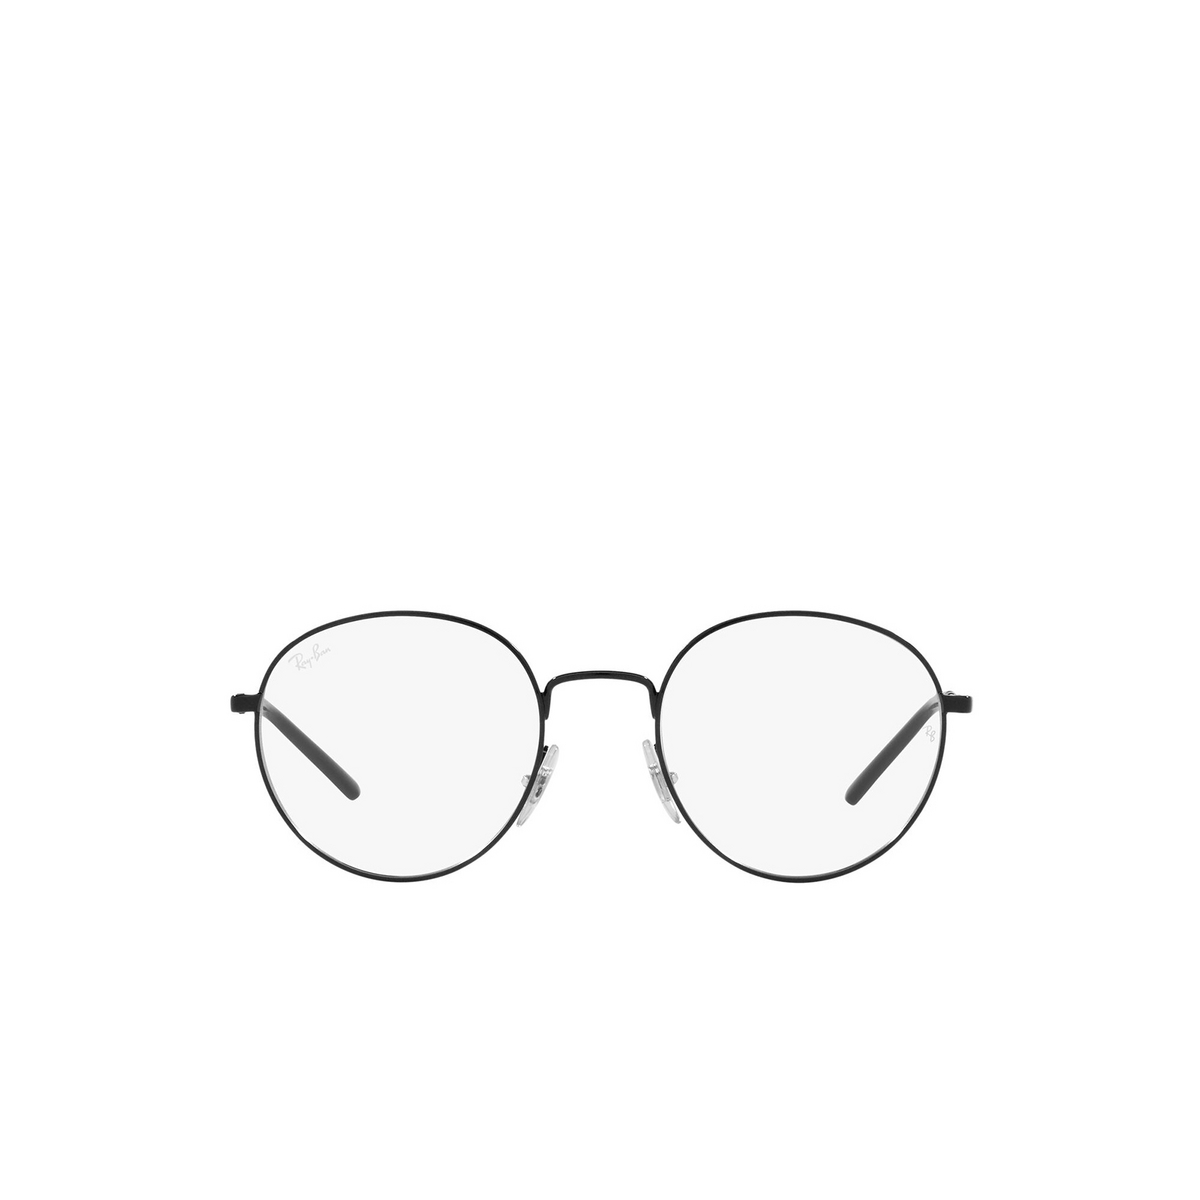 Ray-Ban® Round Eyeglasses: RX3681V color Black 2509 - front view.